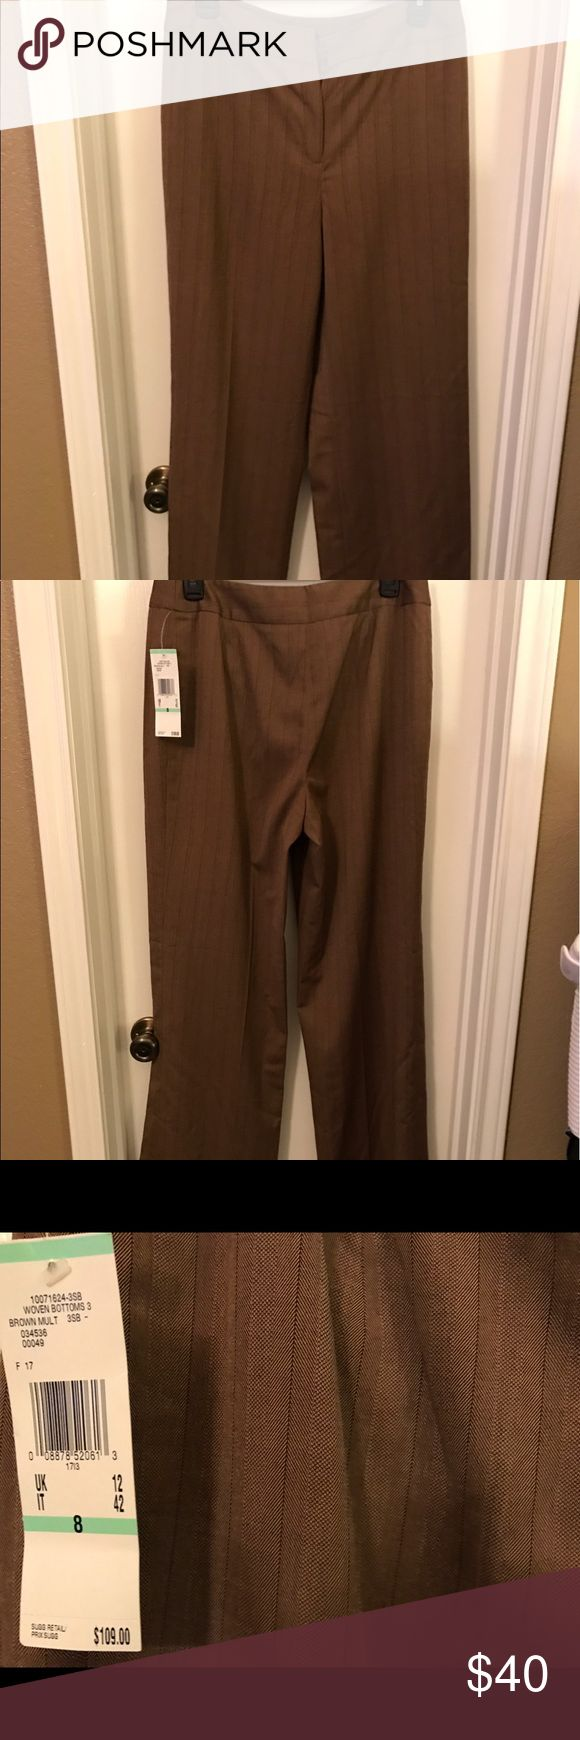 """Anne Klein Brown Pinstripe Slacks Pants Size 8 NWT Anne Klein Brown Pinstripe Stretch Slacks Pants Size 8. They are new with tags. Material is 64% polyester, 34% rayon, 2% spandex. Inseam is about 32"""". Smoke-free home. Anne Klein Pants Trousers"""